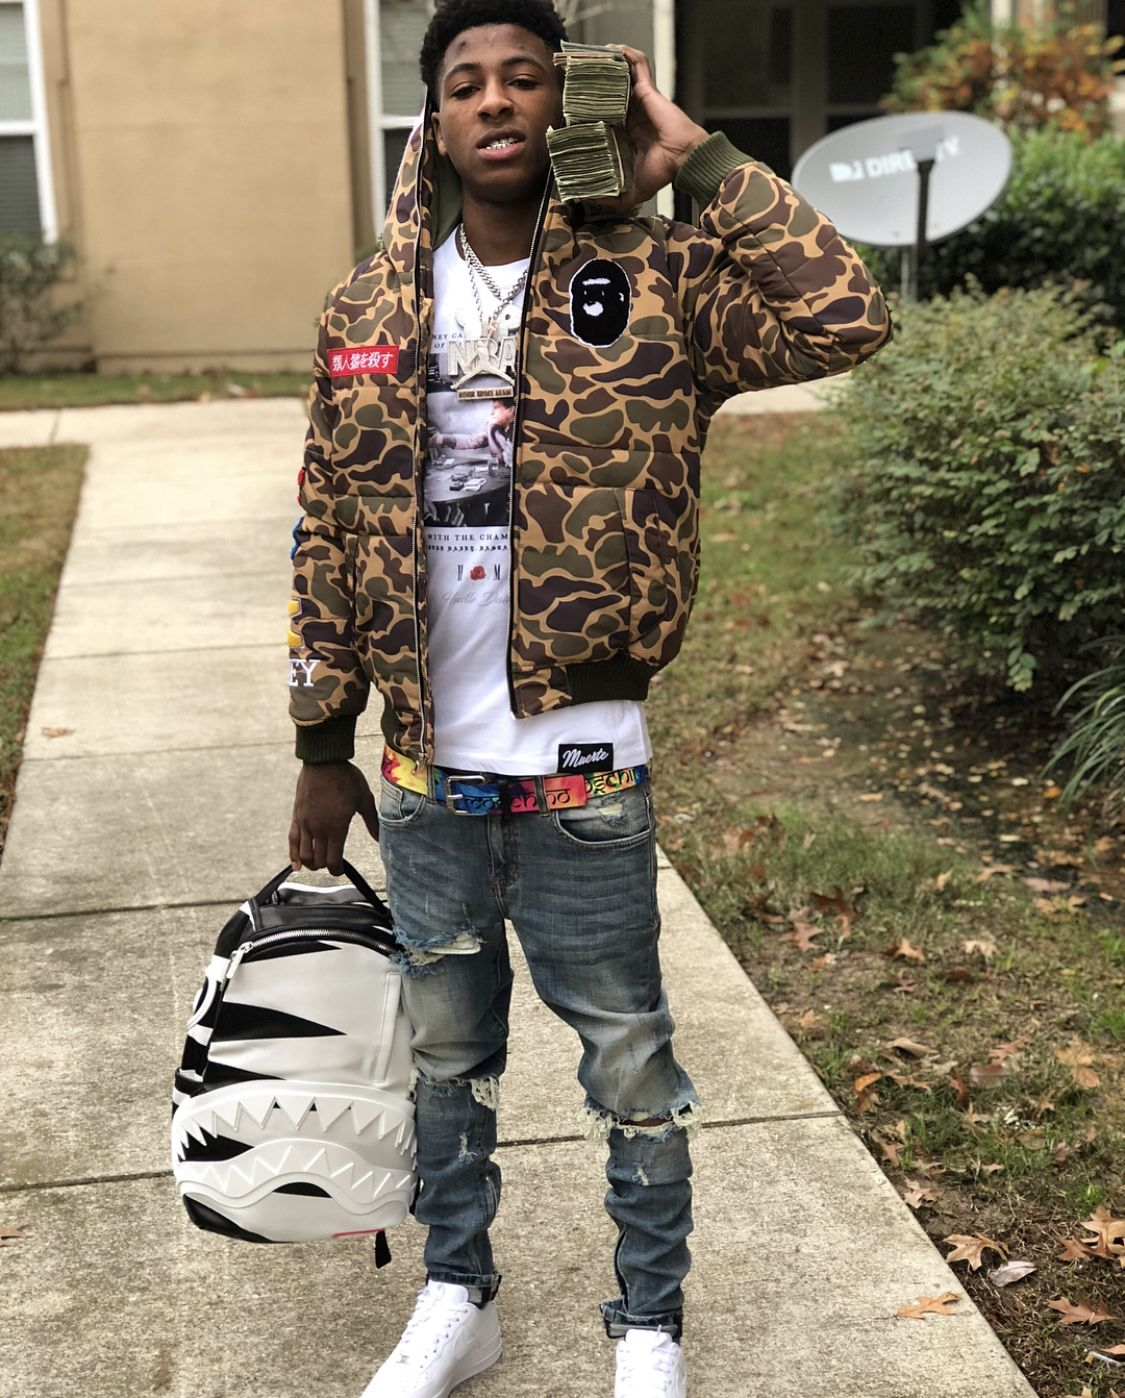 Pin by Cash Szn on Nba Youngboy Nba outfit, Rapper